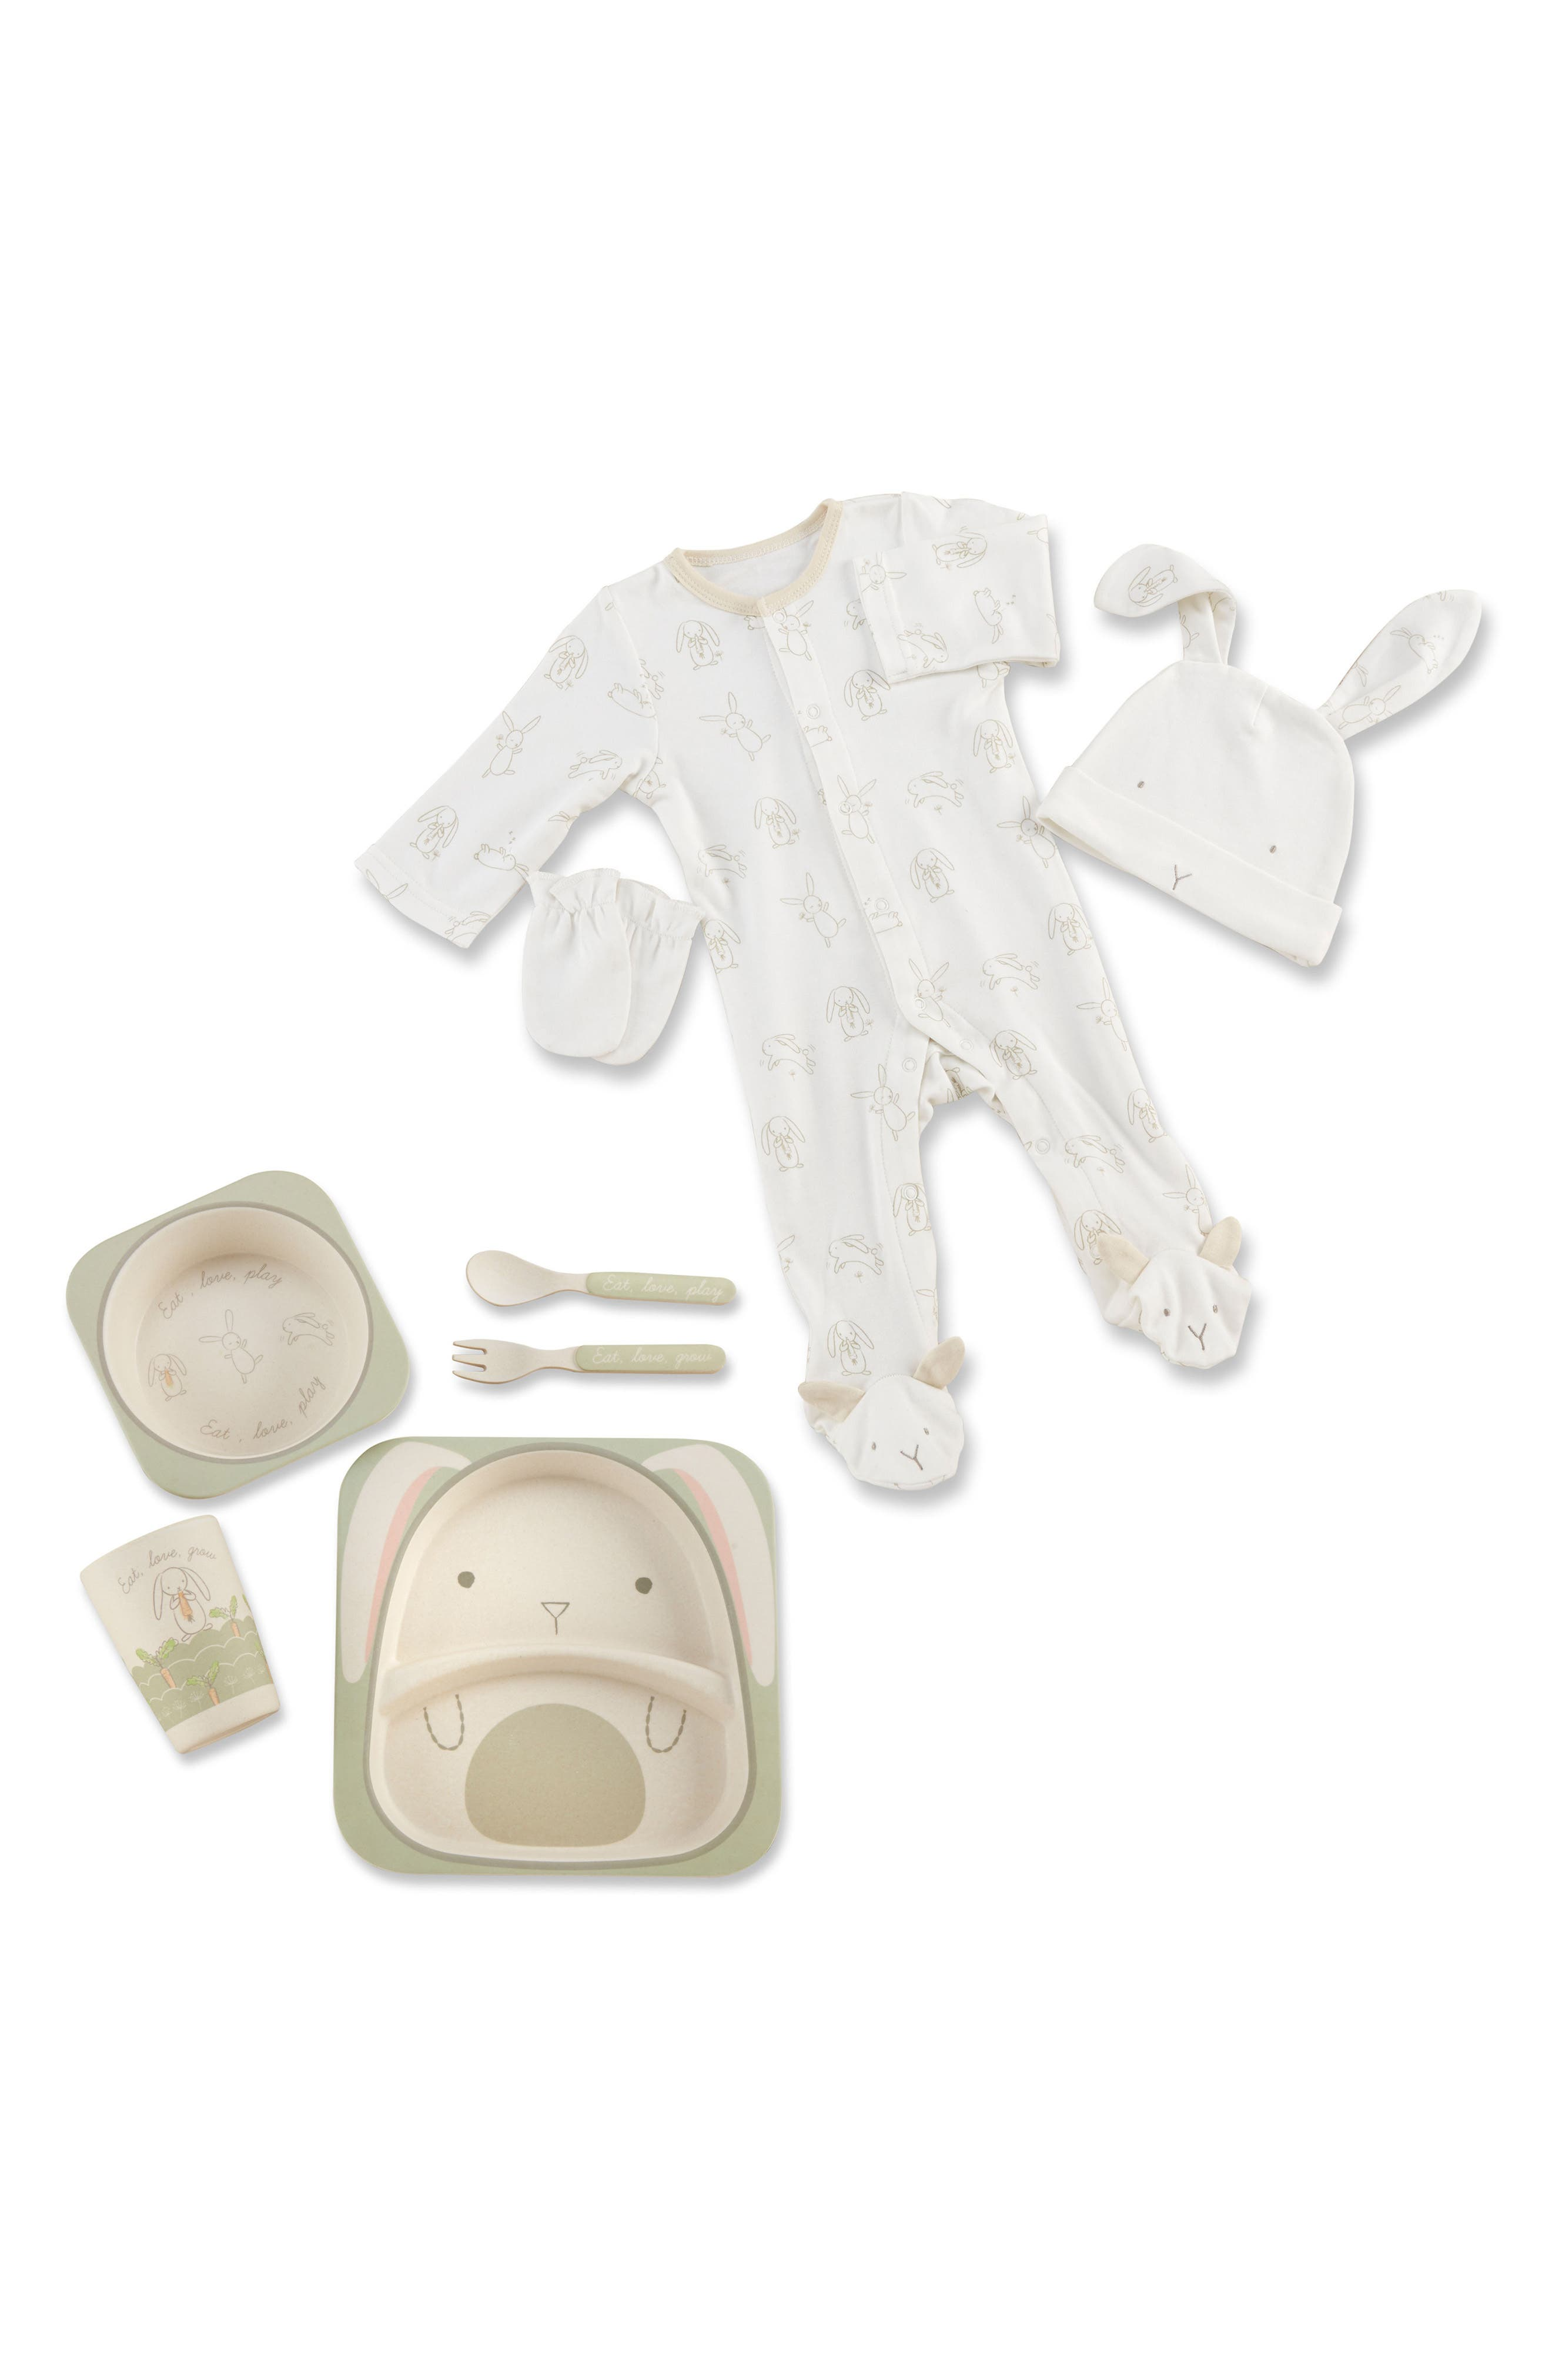 Natural Baby One-Piece Pajamas, Hat, Mittens & 5-Piece Feeding Set,                         Main,                         color, 280